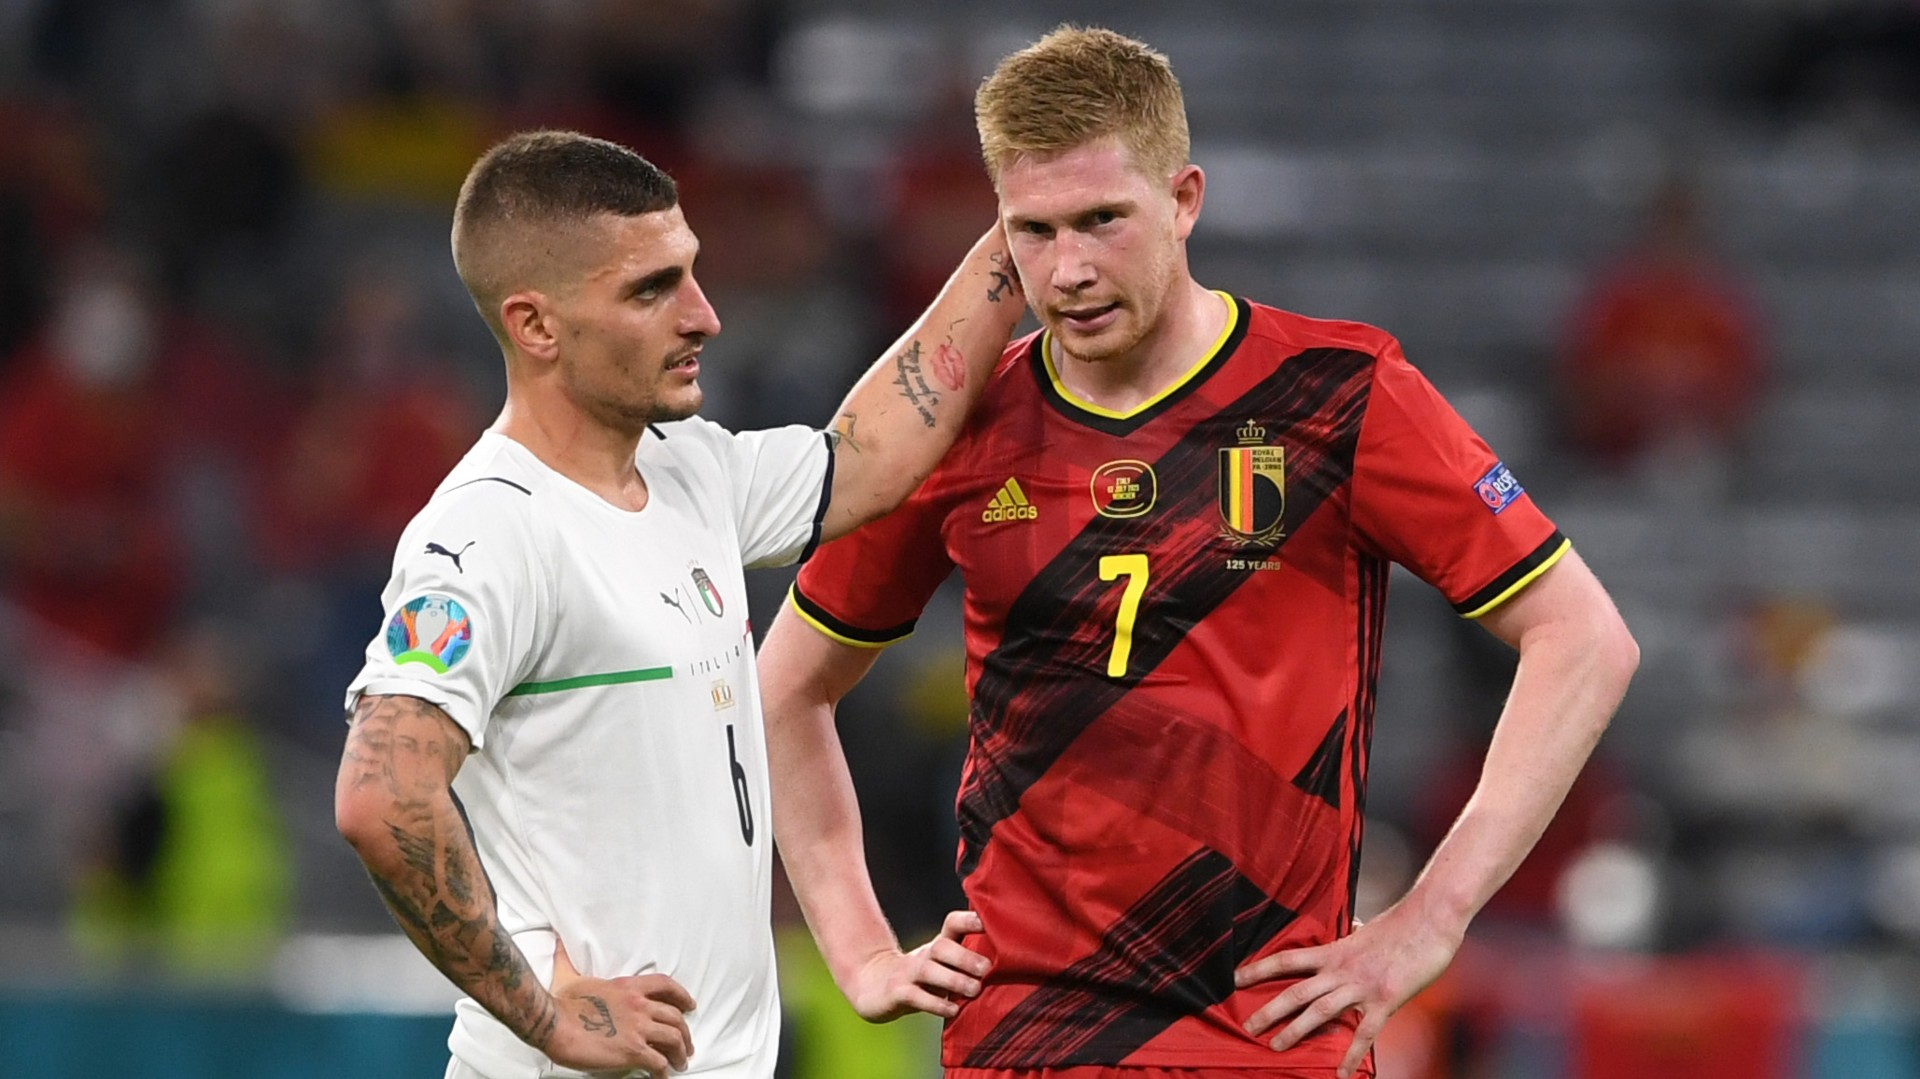 'We are just Belgium' - De Bruyne says Golden Generation cannot compete with France or Italy